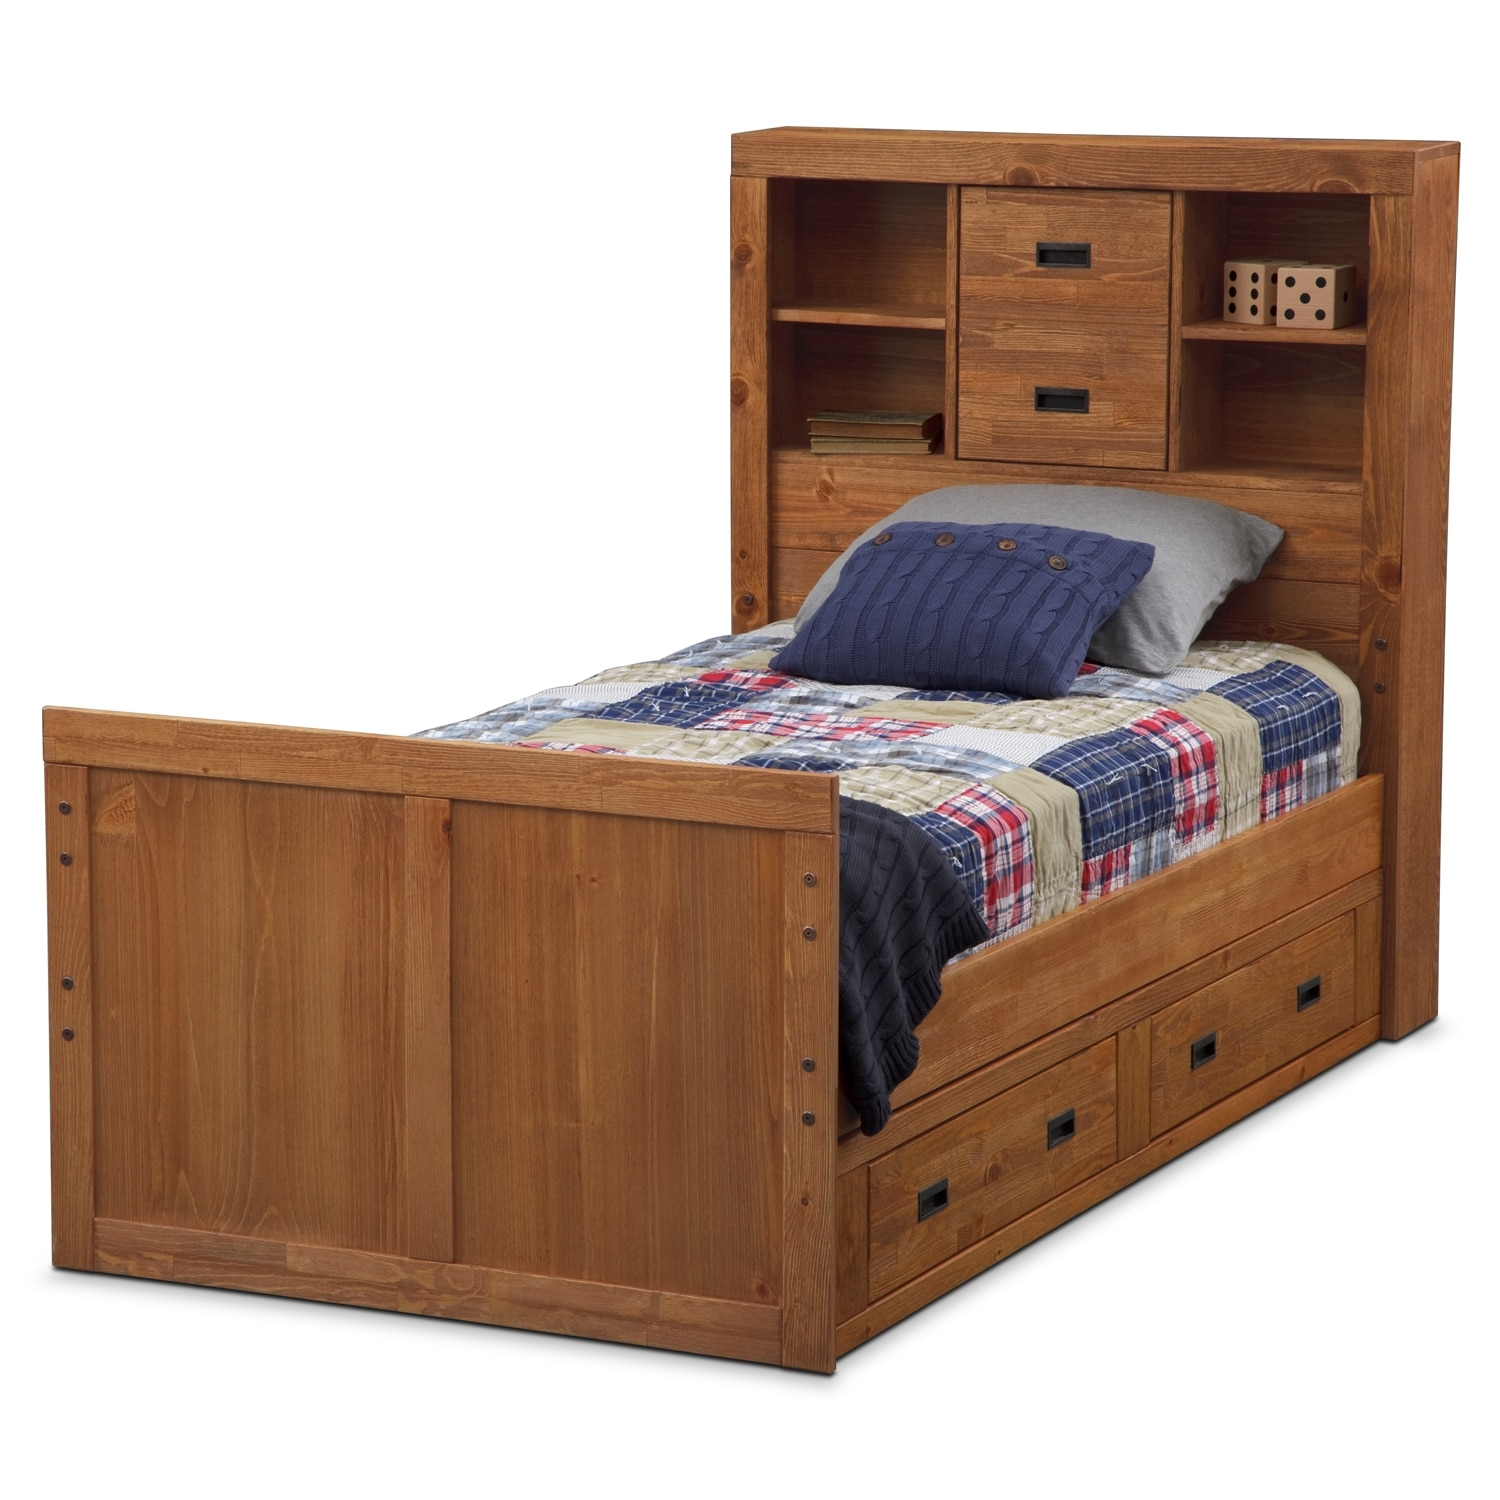 Twin Beds With Storage Drawers 28 Images Furniture